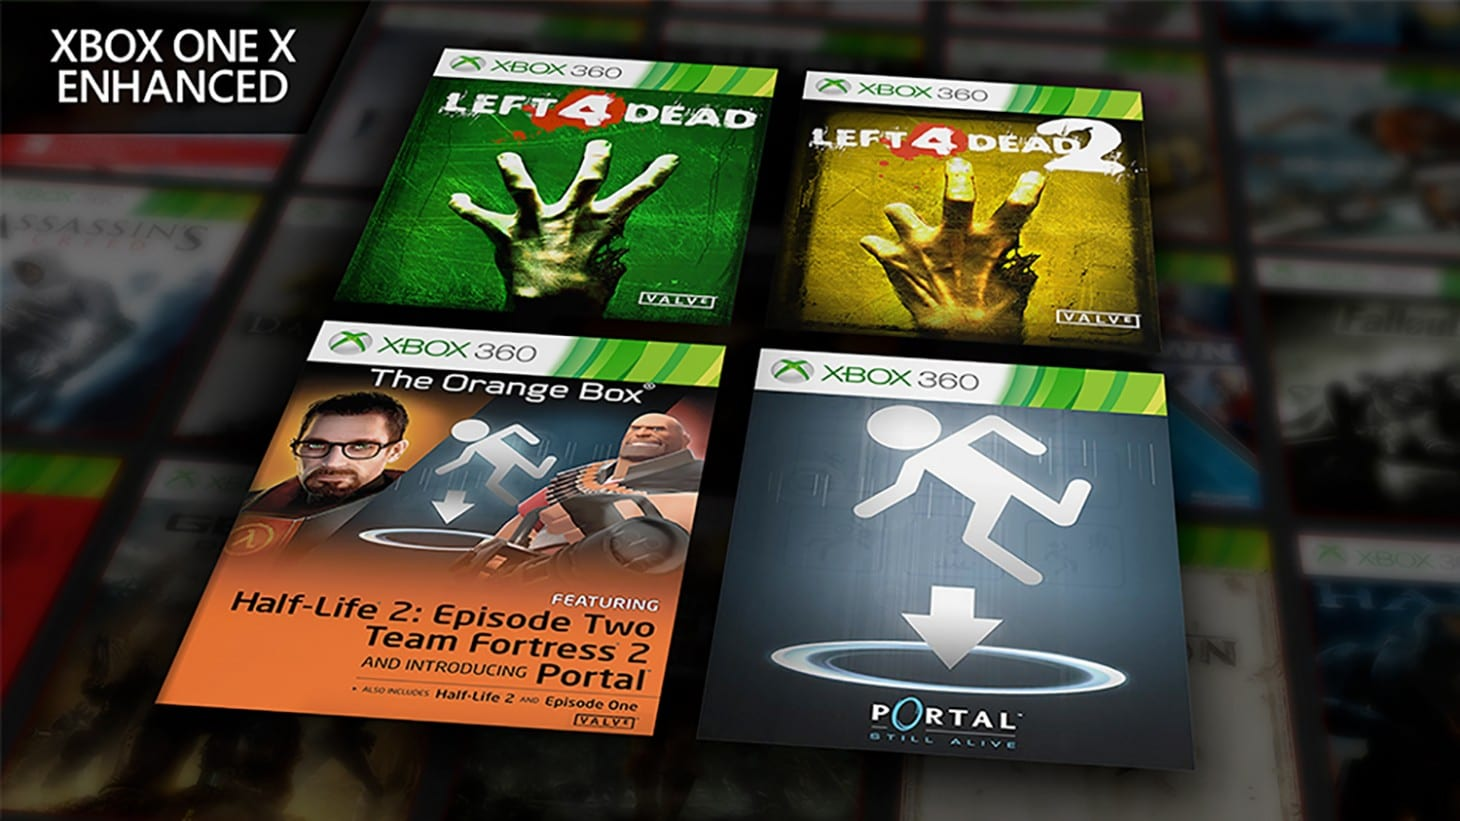 Valve Titles Being Added To Xbox X Enhanced List